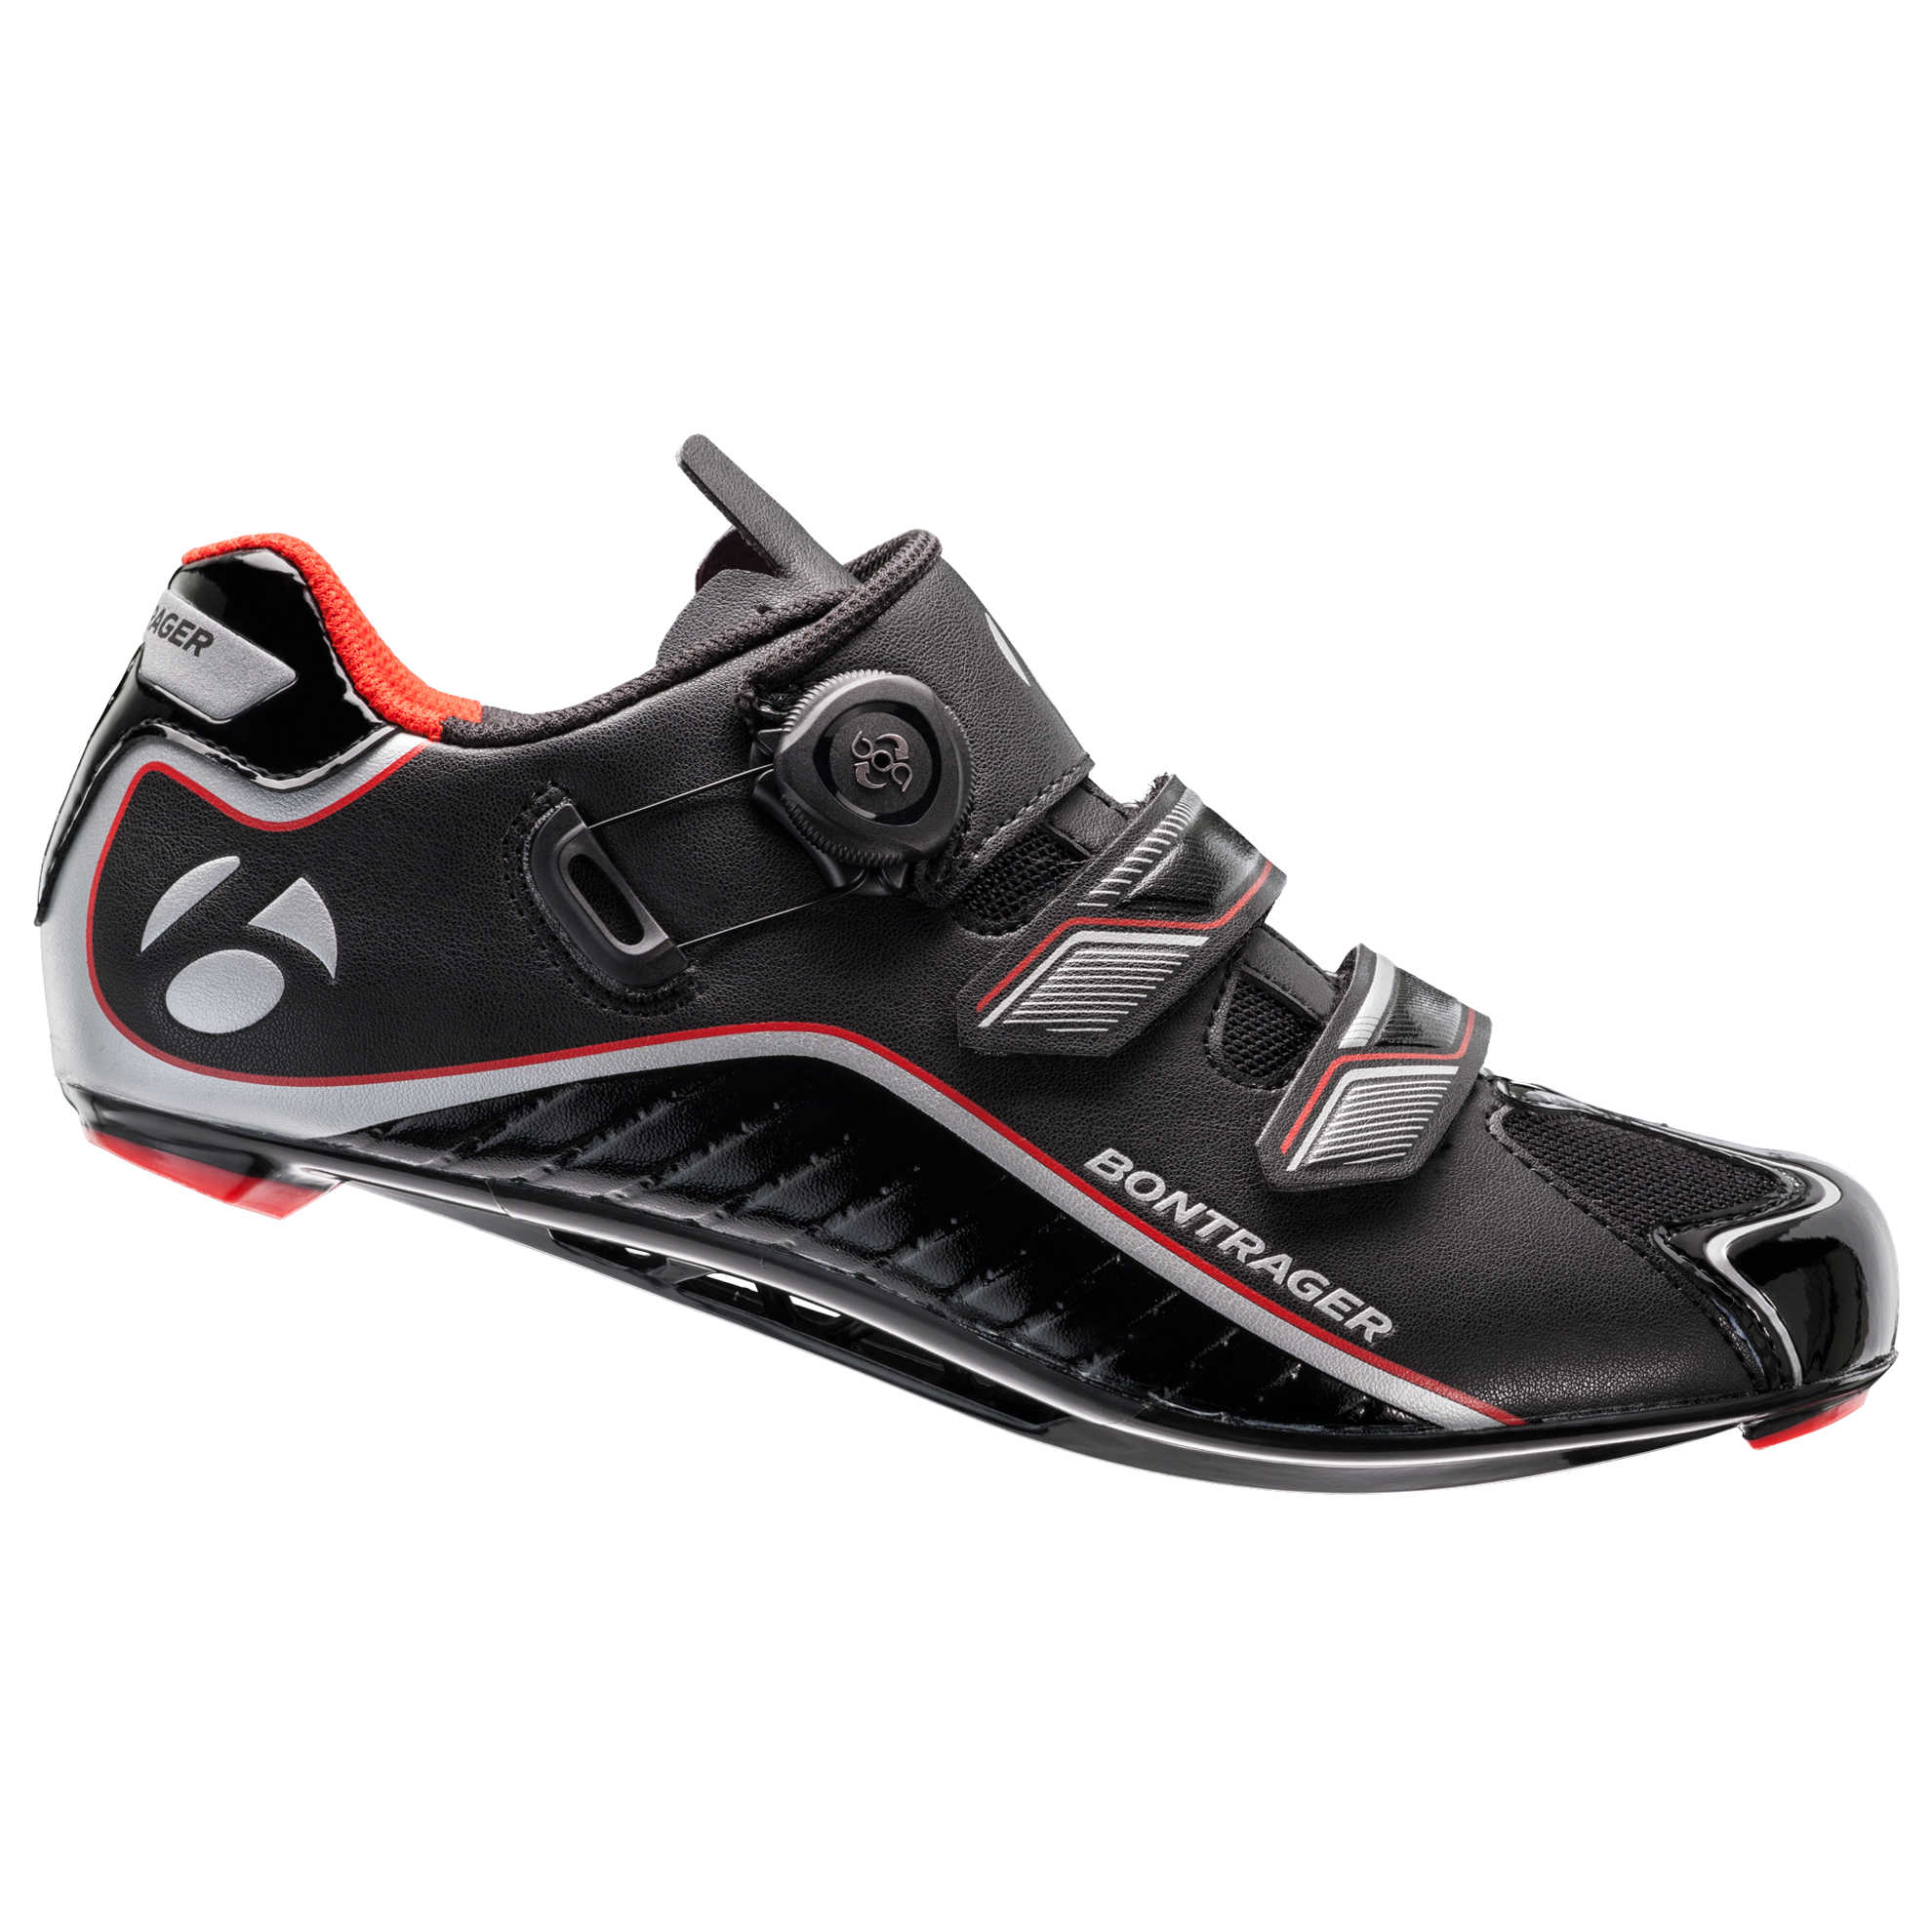 Bontrager Circuit Shoe : Black